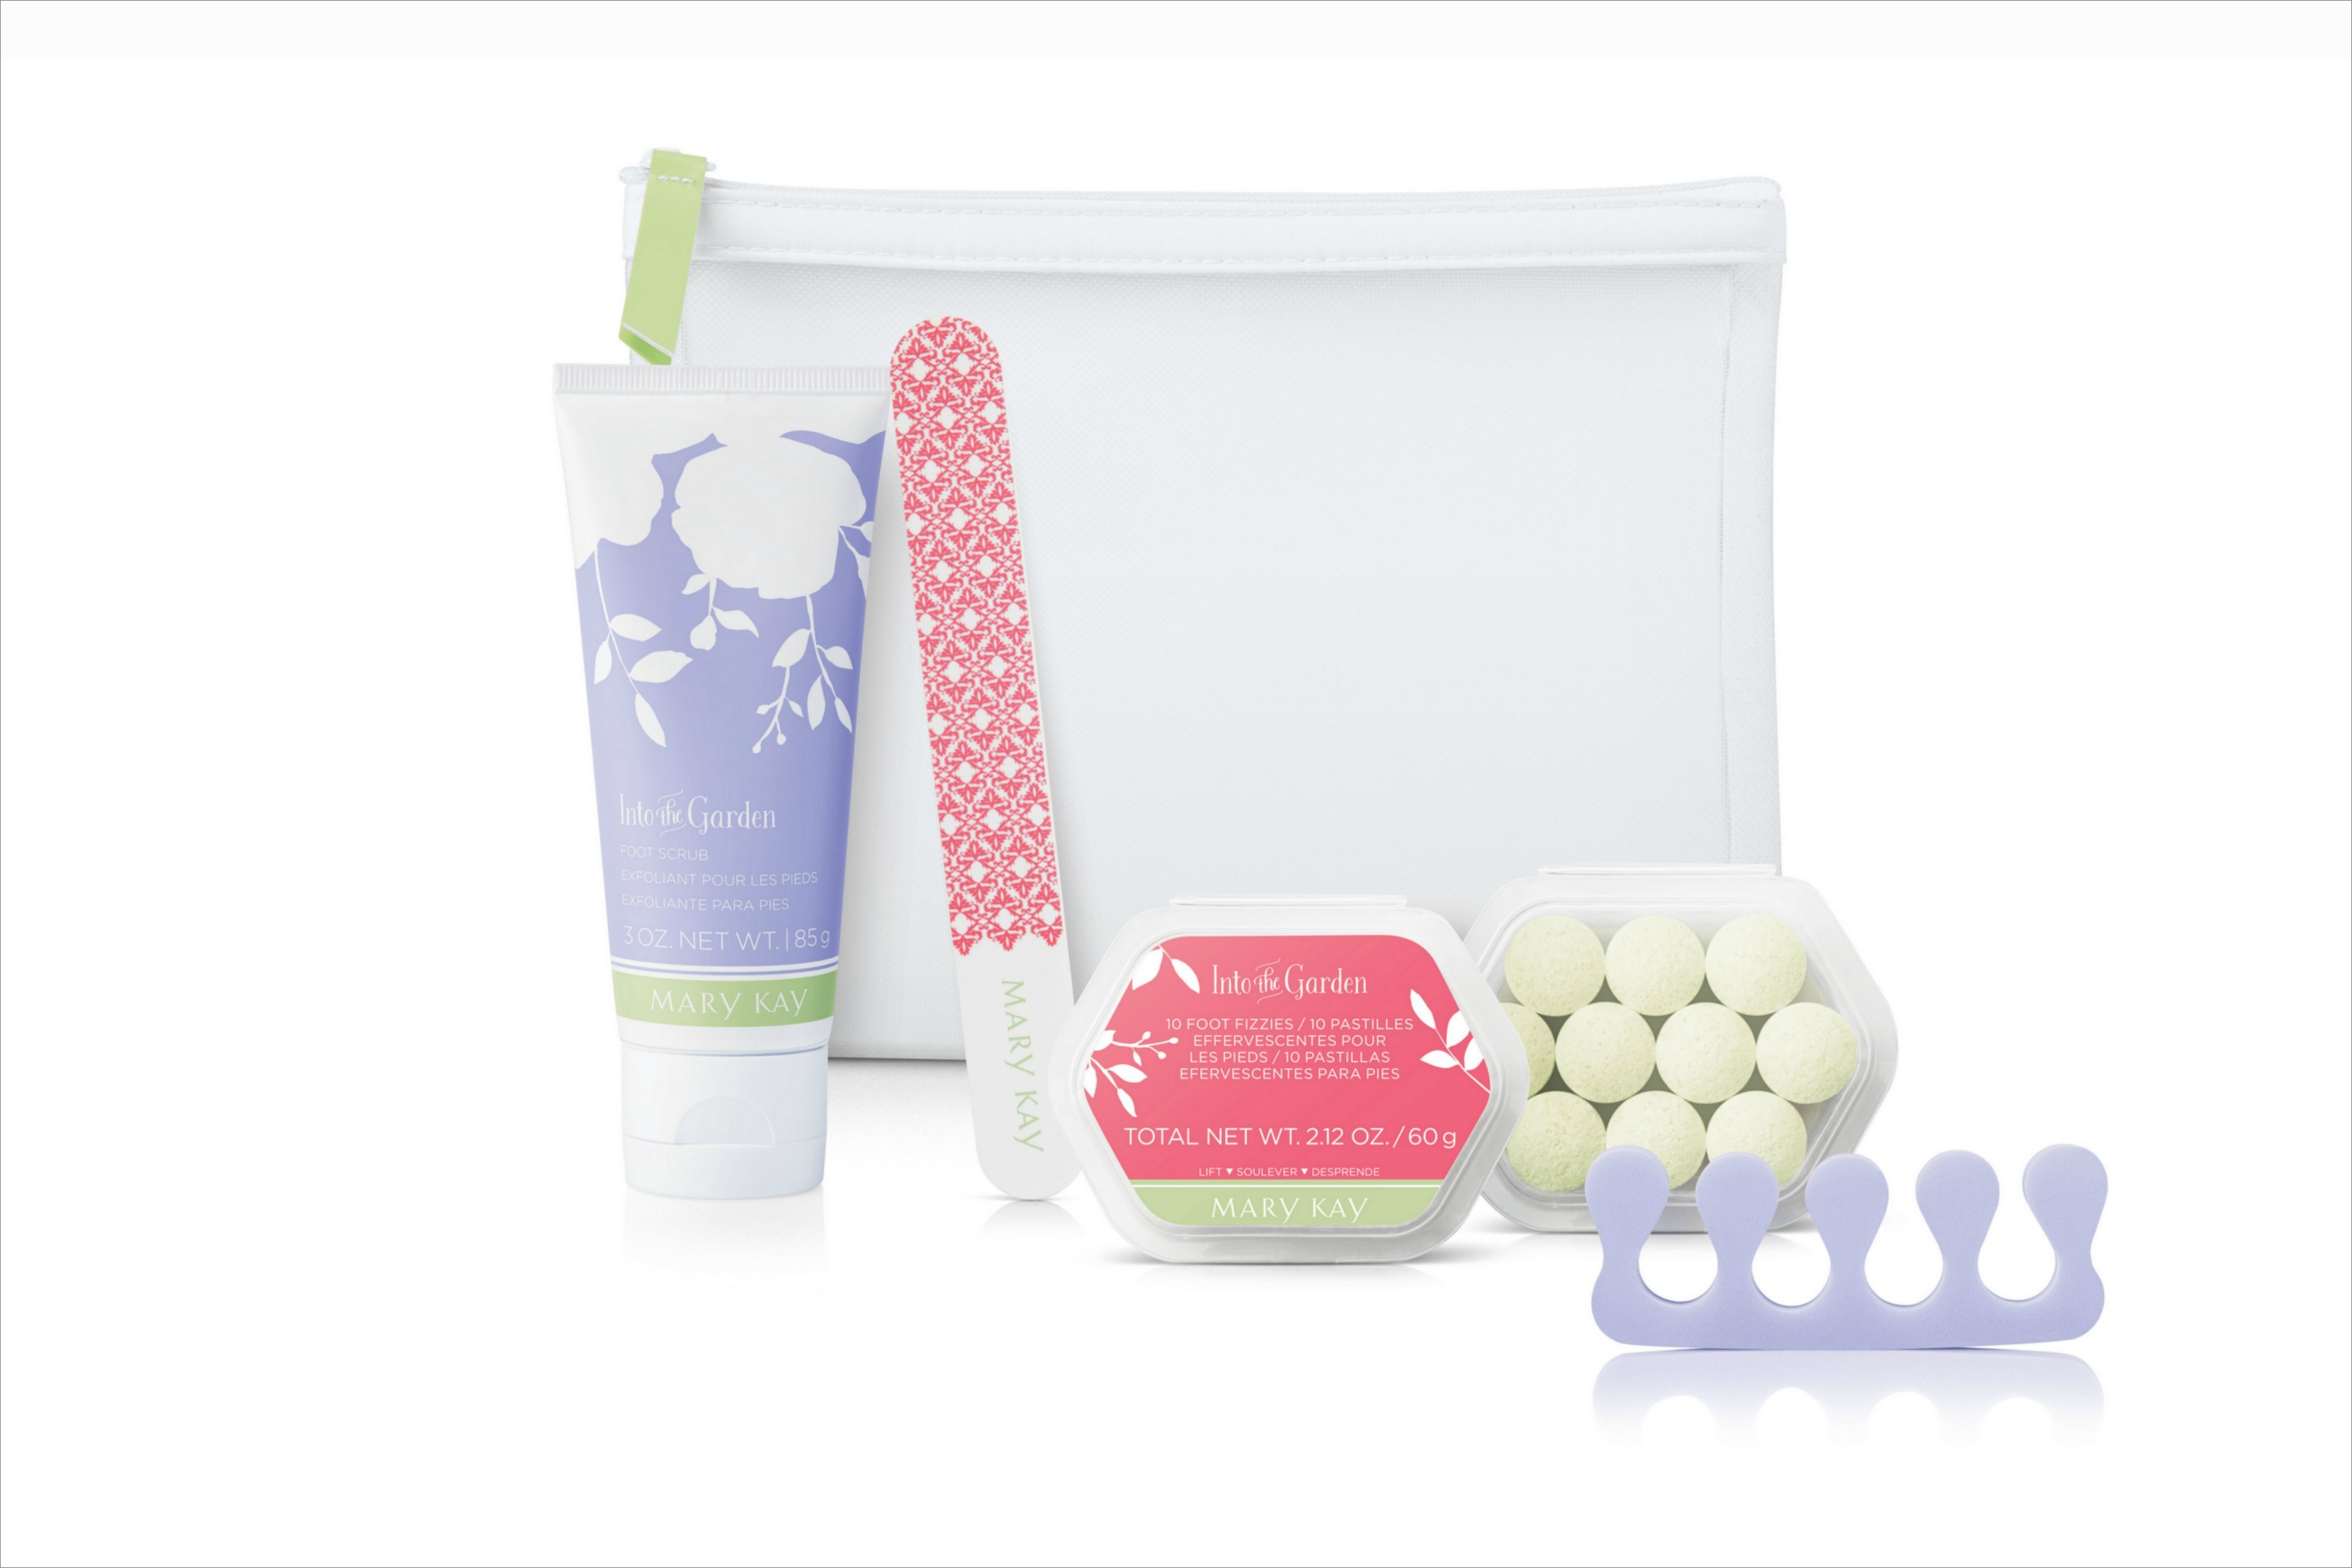 Mary Kay Limited Edition Into the Garden Pedicure Set